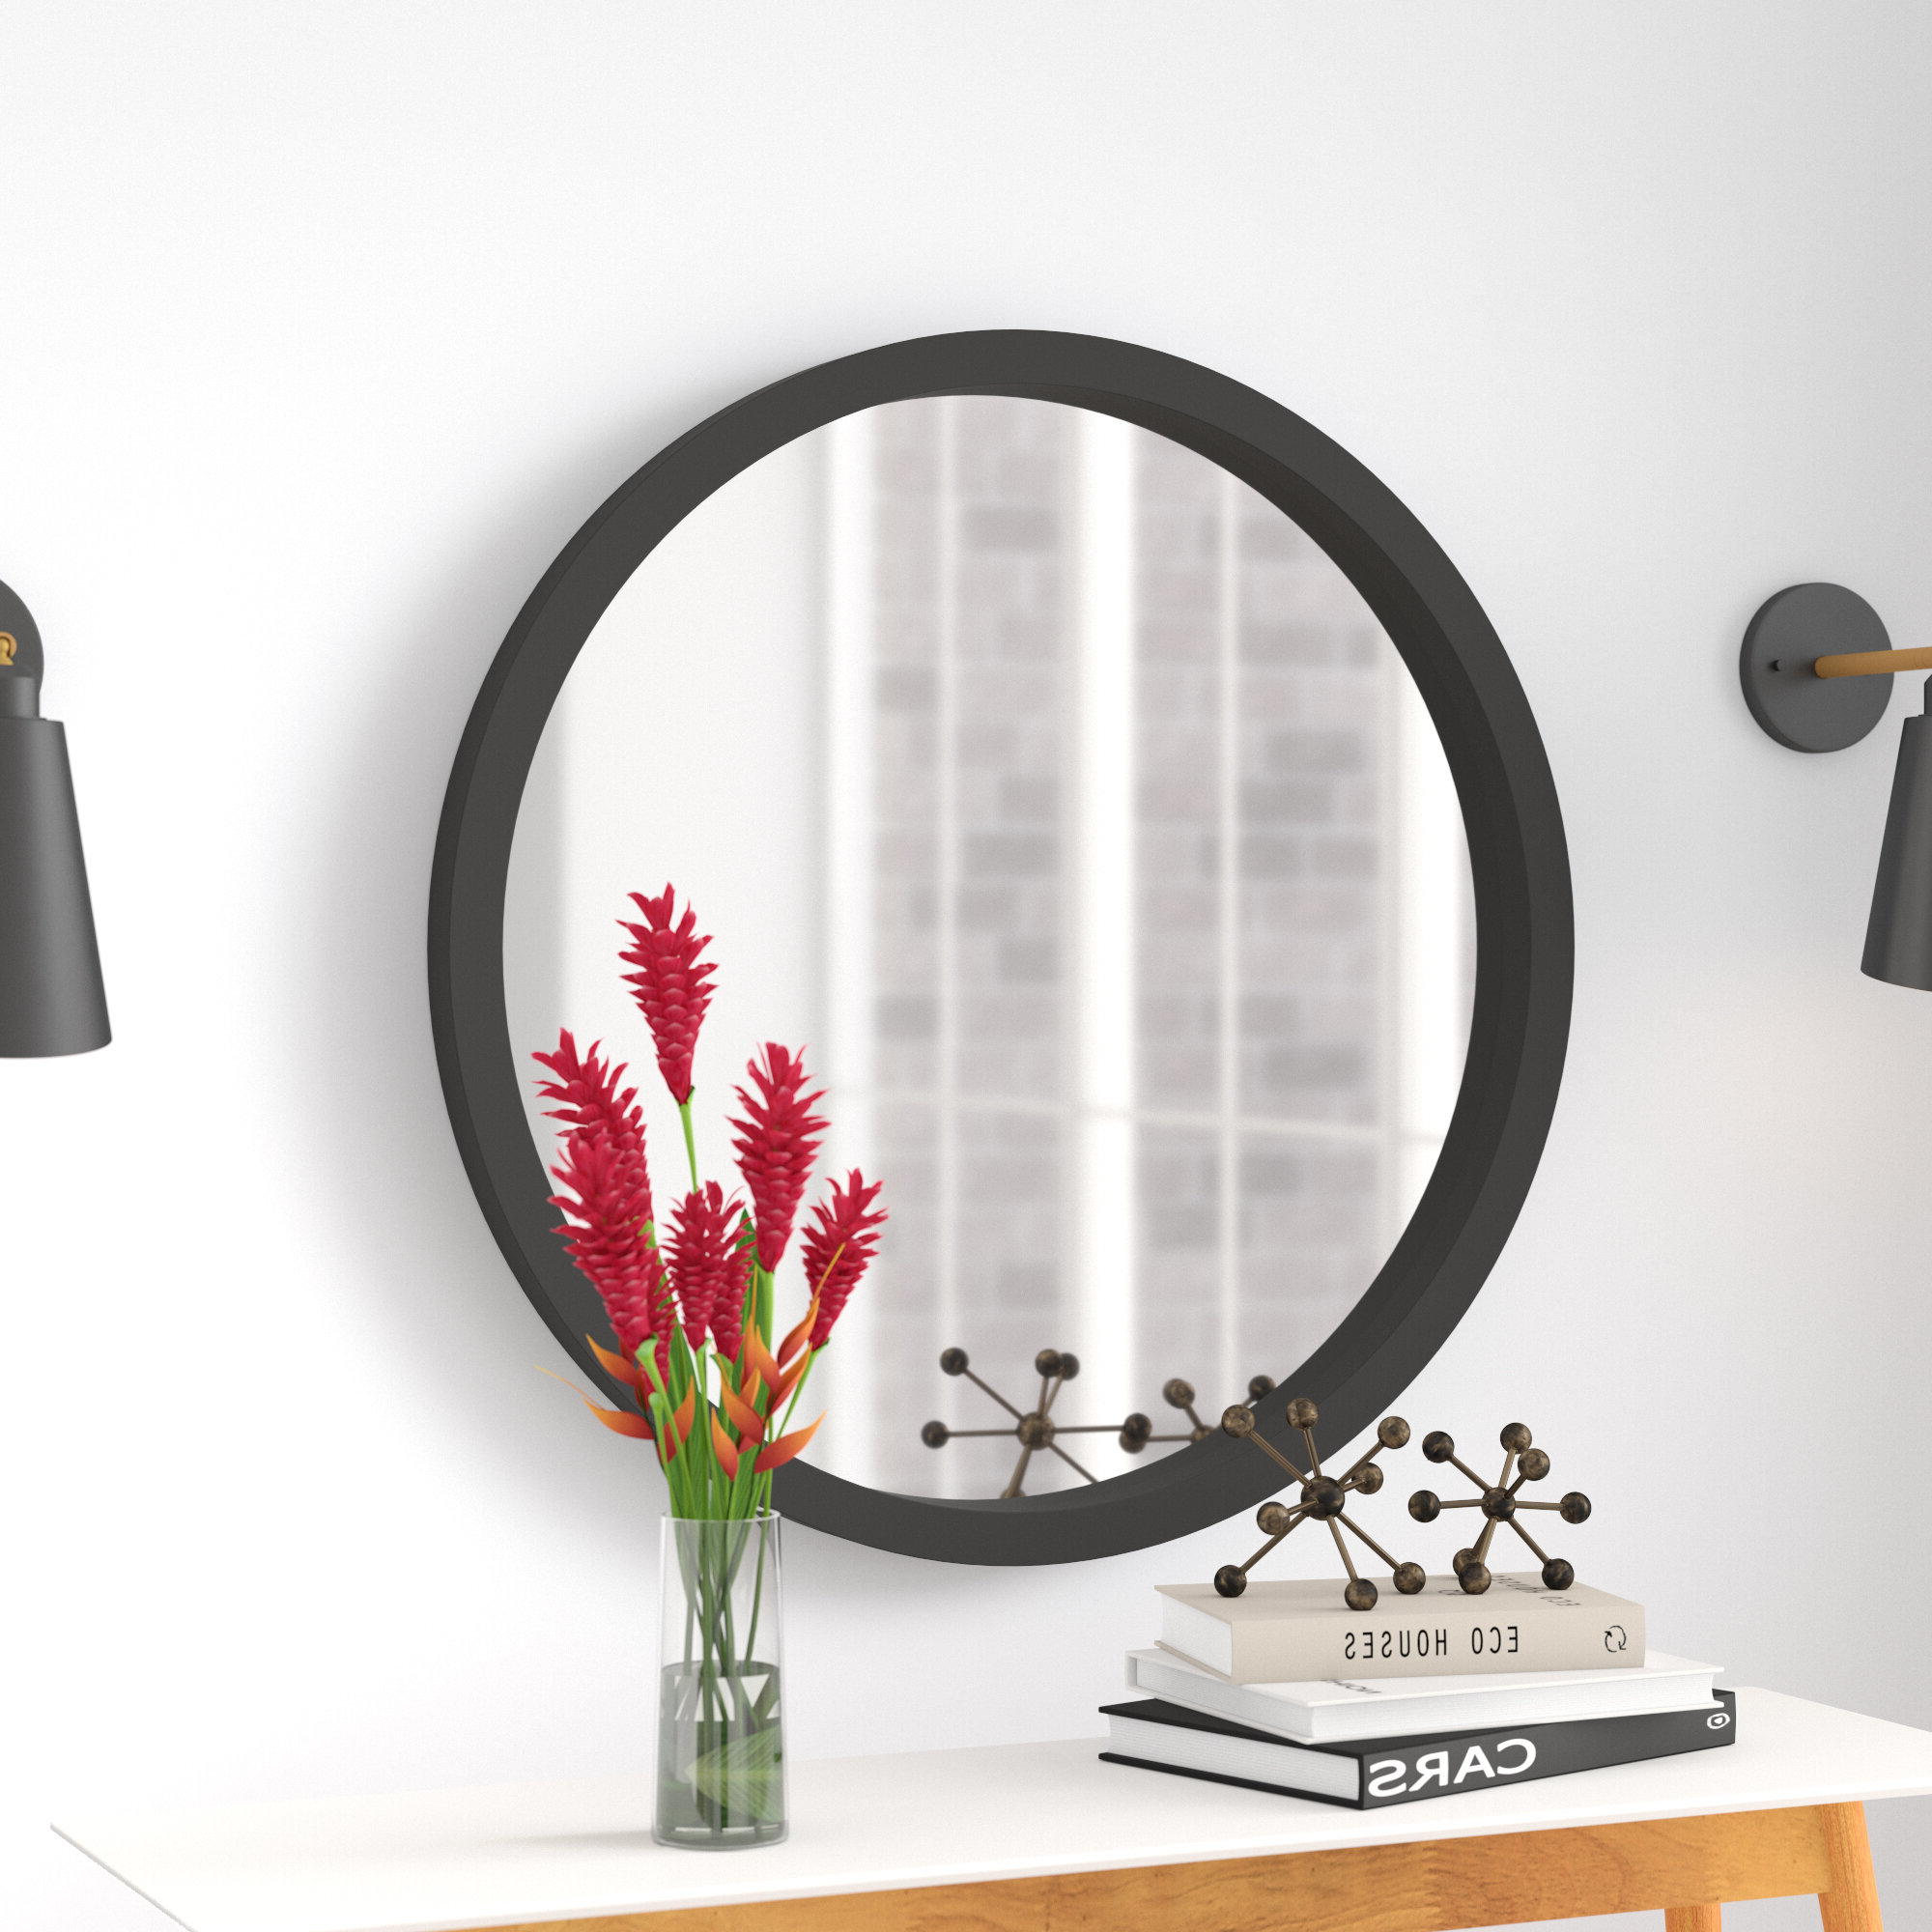 Langley Street Samson Modern & Contemporary Wall Mirror Intended For Well Known Colton Modern & Contemporary Wall Mirrors (View 4 of 20)